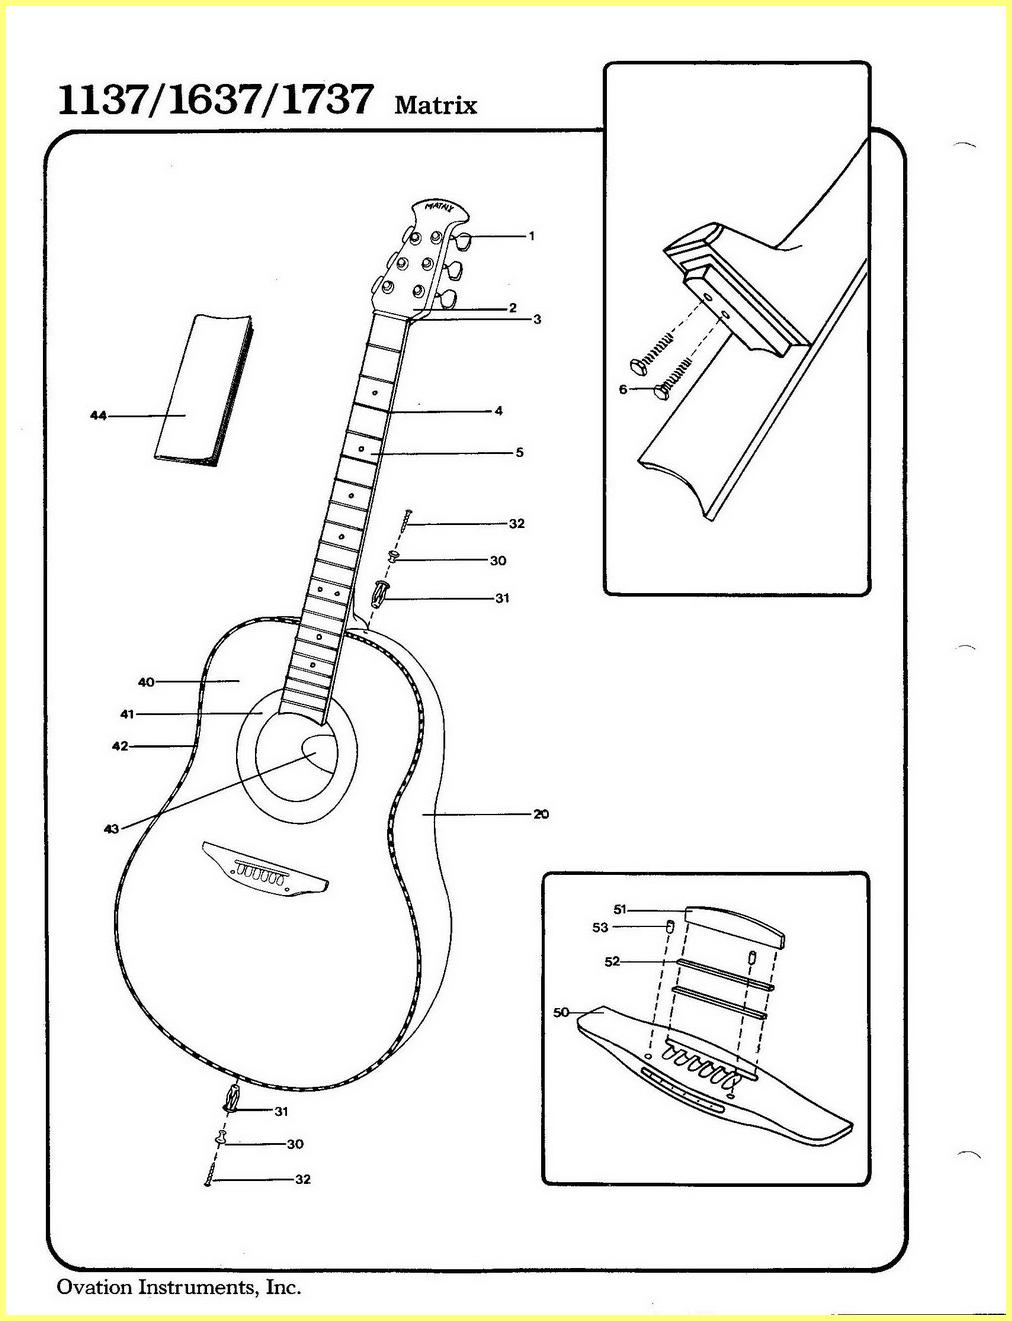 Ovation Applause Ae 35 Wiring Diagram : 37 Wiring Diagram